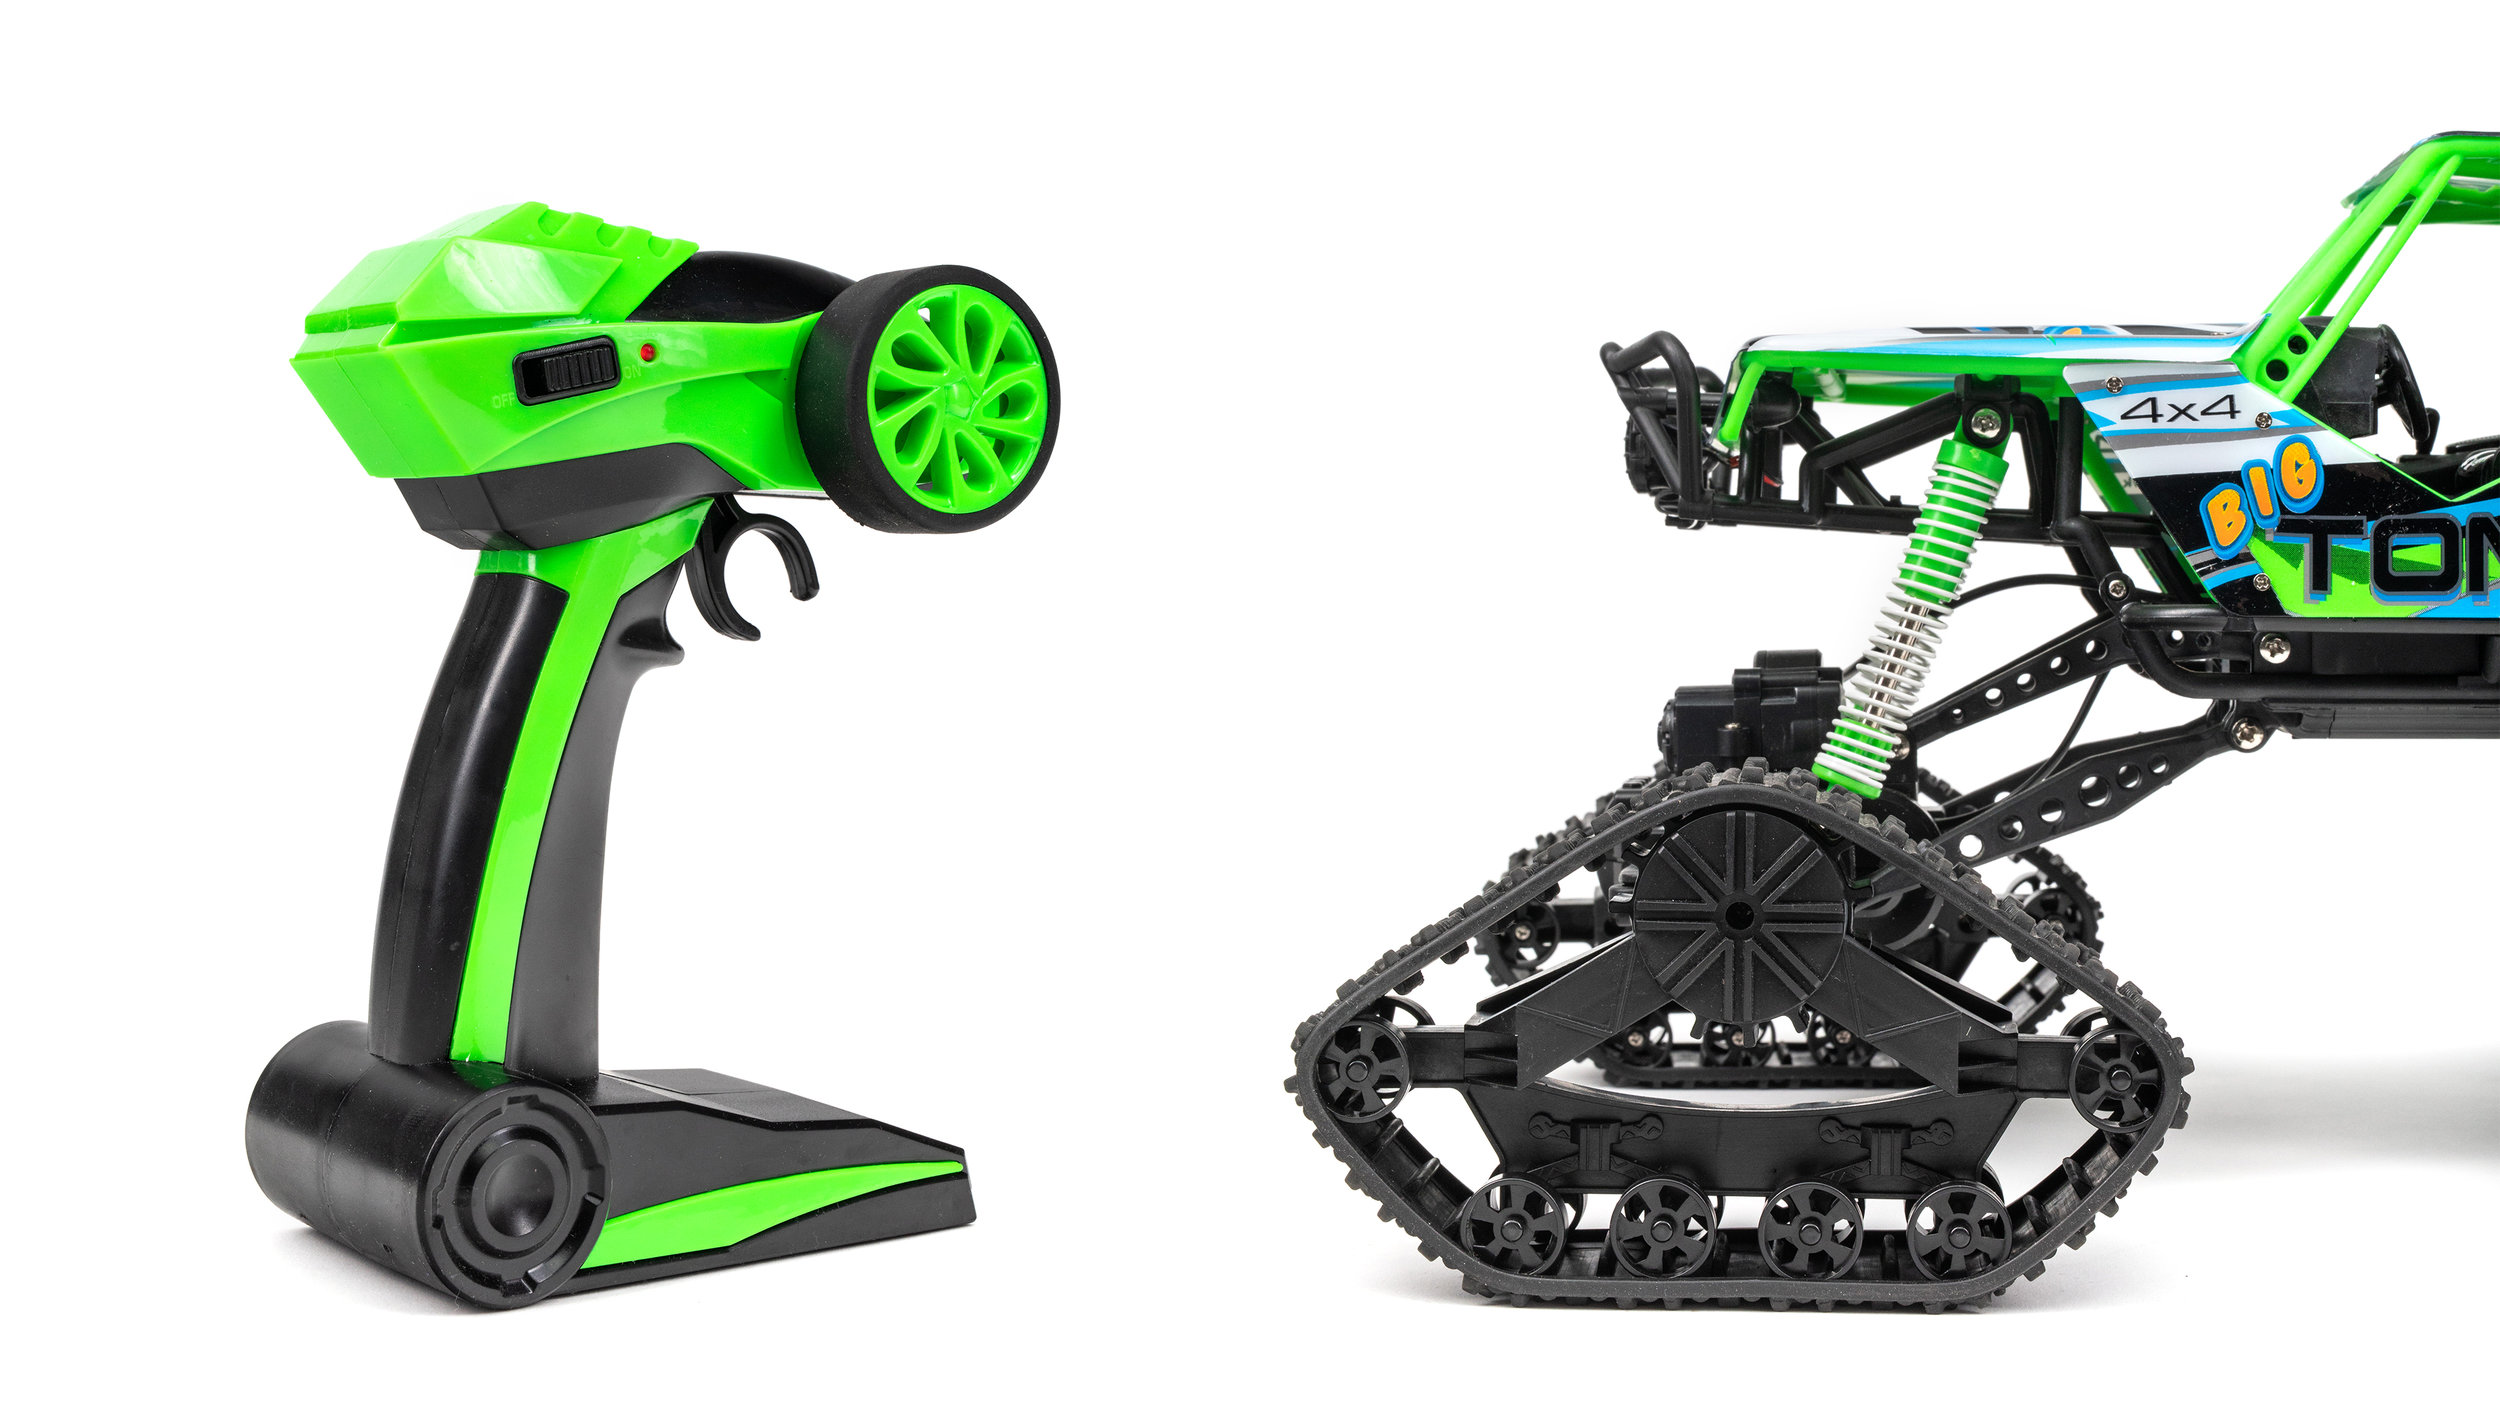 Ready to Conquer! - With the BIG TOM SC's giant tracked wheels, you can truly feel like the king of any terrain. Snow, ice, mud, gravel, grass, you name it and the BIG TOM SC can handle it!